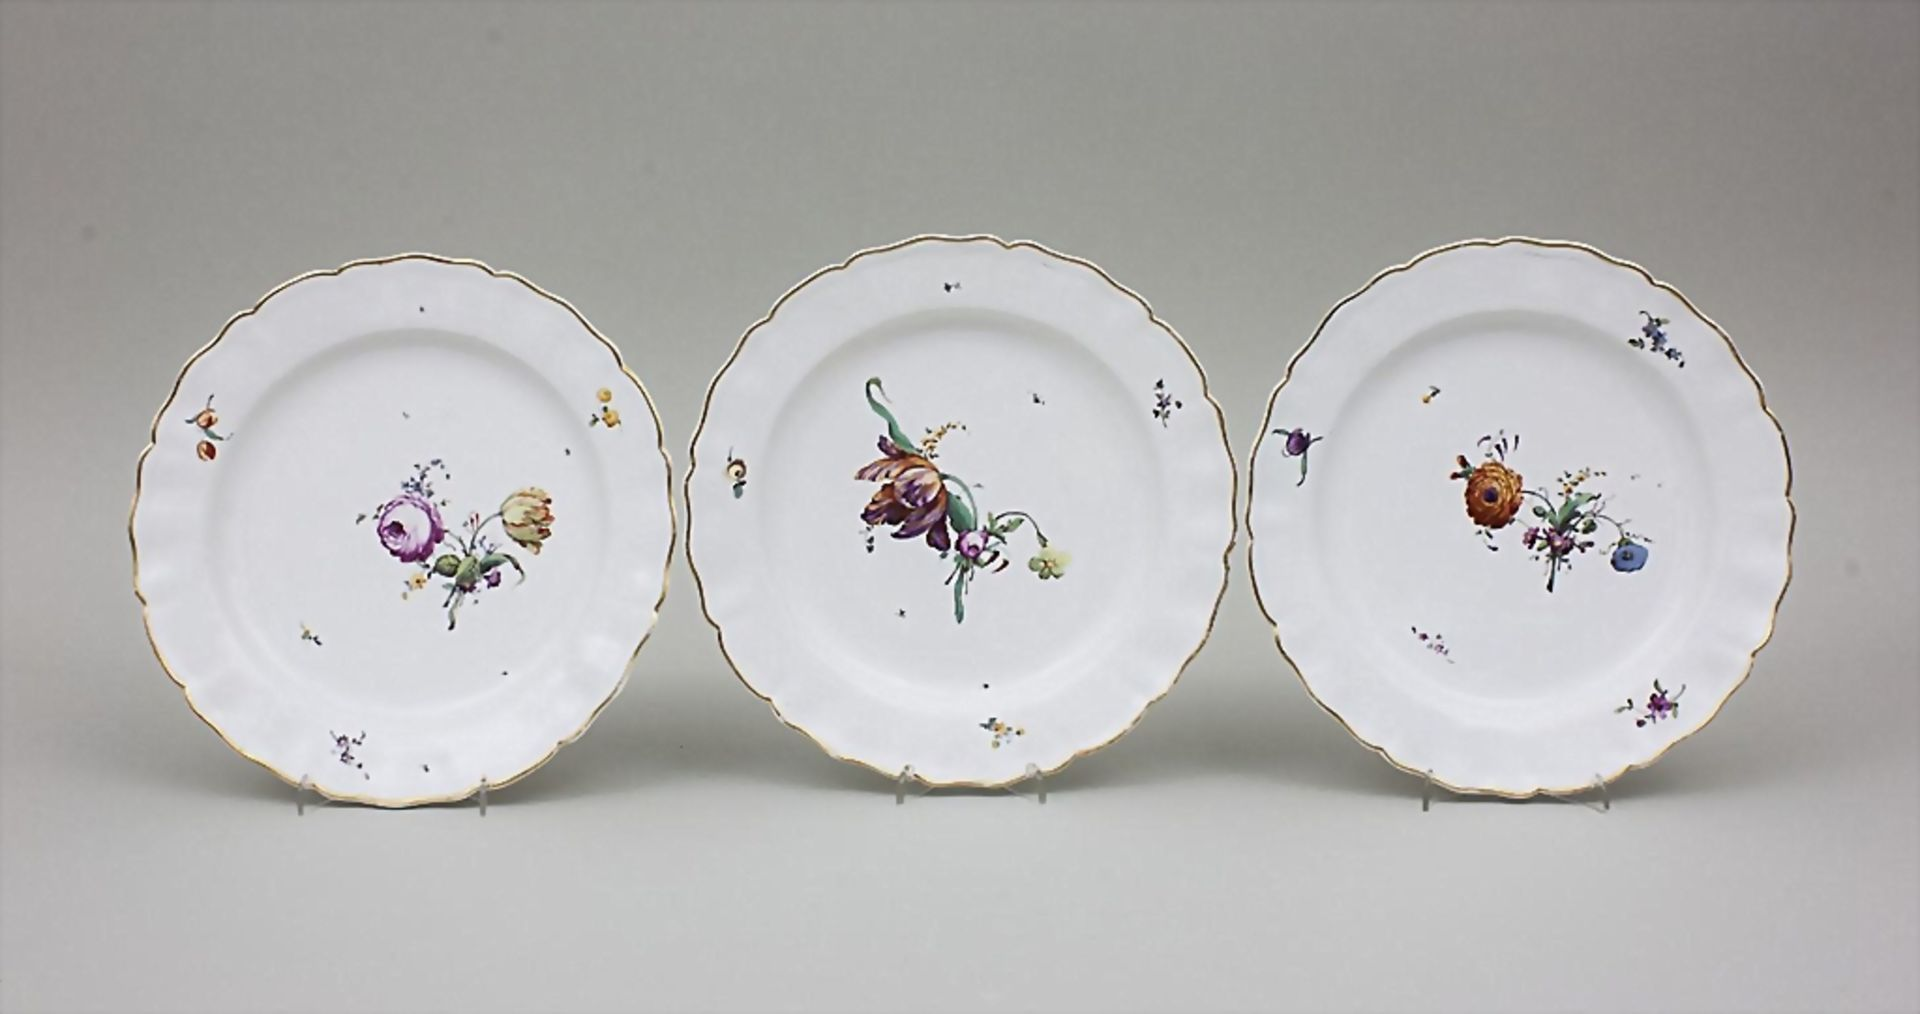 6 Teller mit Blumendekor / A Set Of 6 Dinner Plates With Flowers, Churfürstl. Mainzische Manufaktur, - Bild 2 aus 4